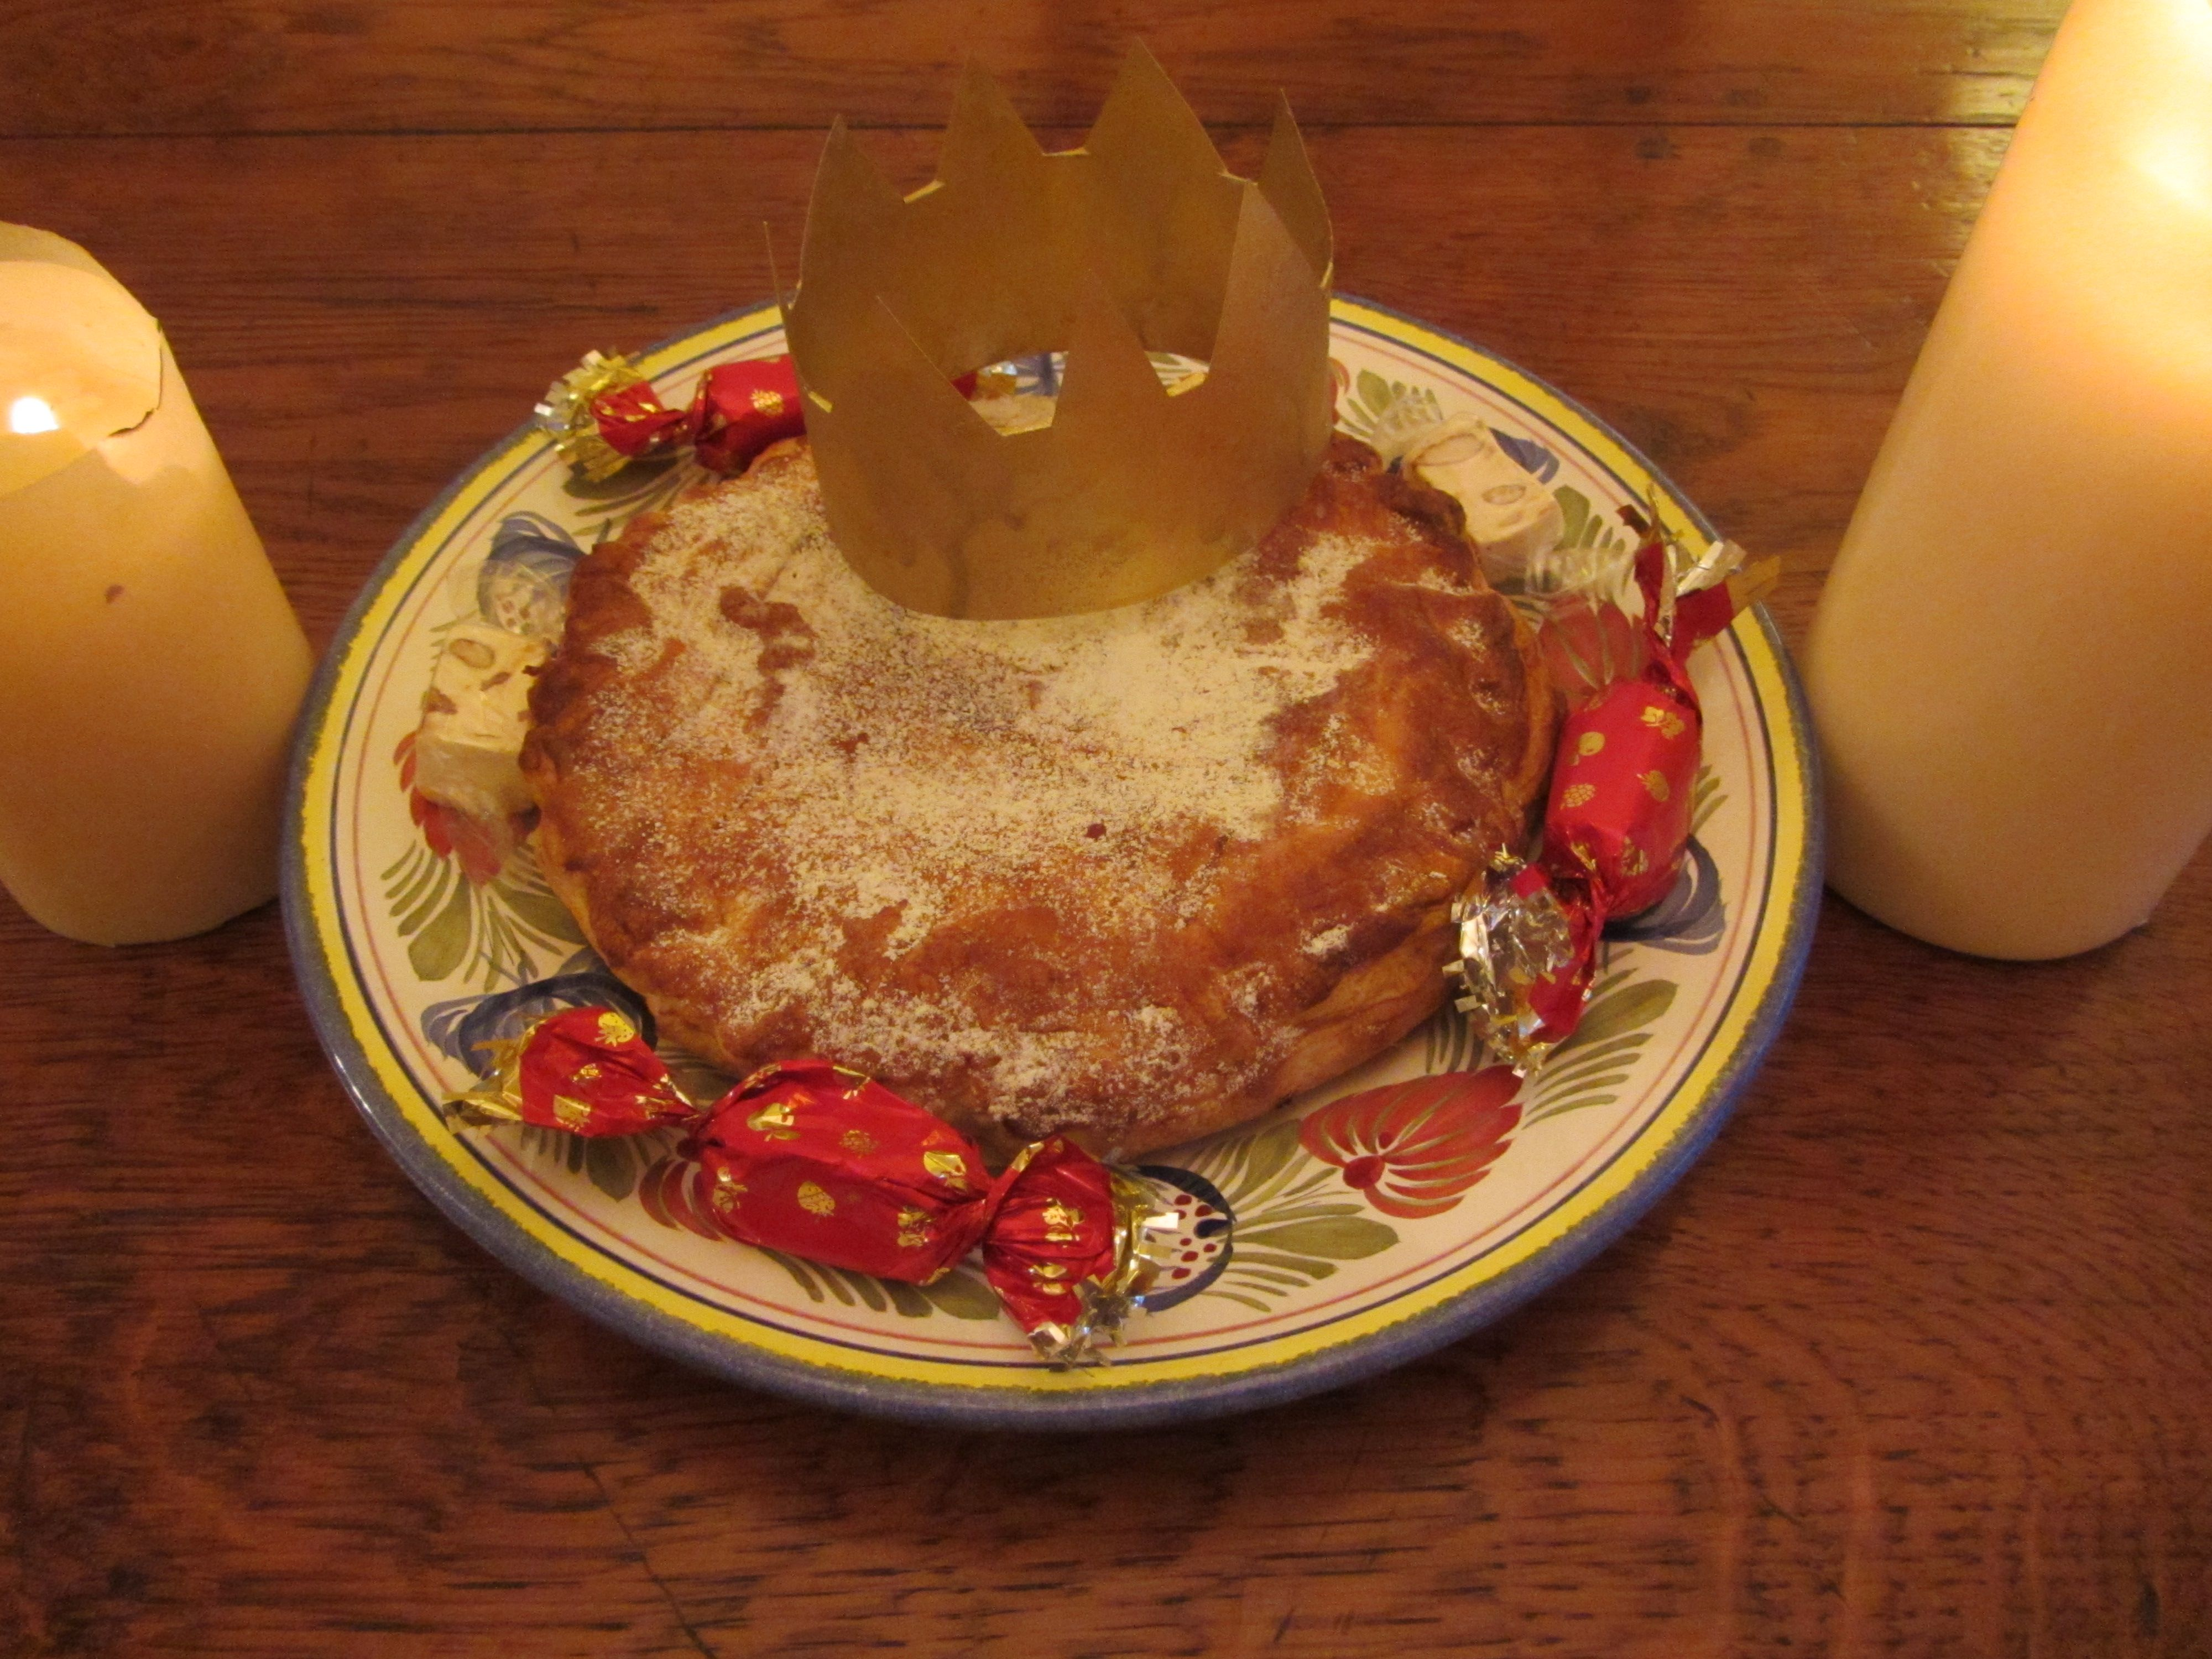 Recipe for galette des rois - Three Kings' Cake | agreenmouse.com